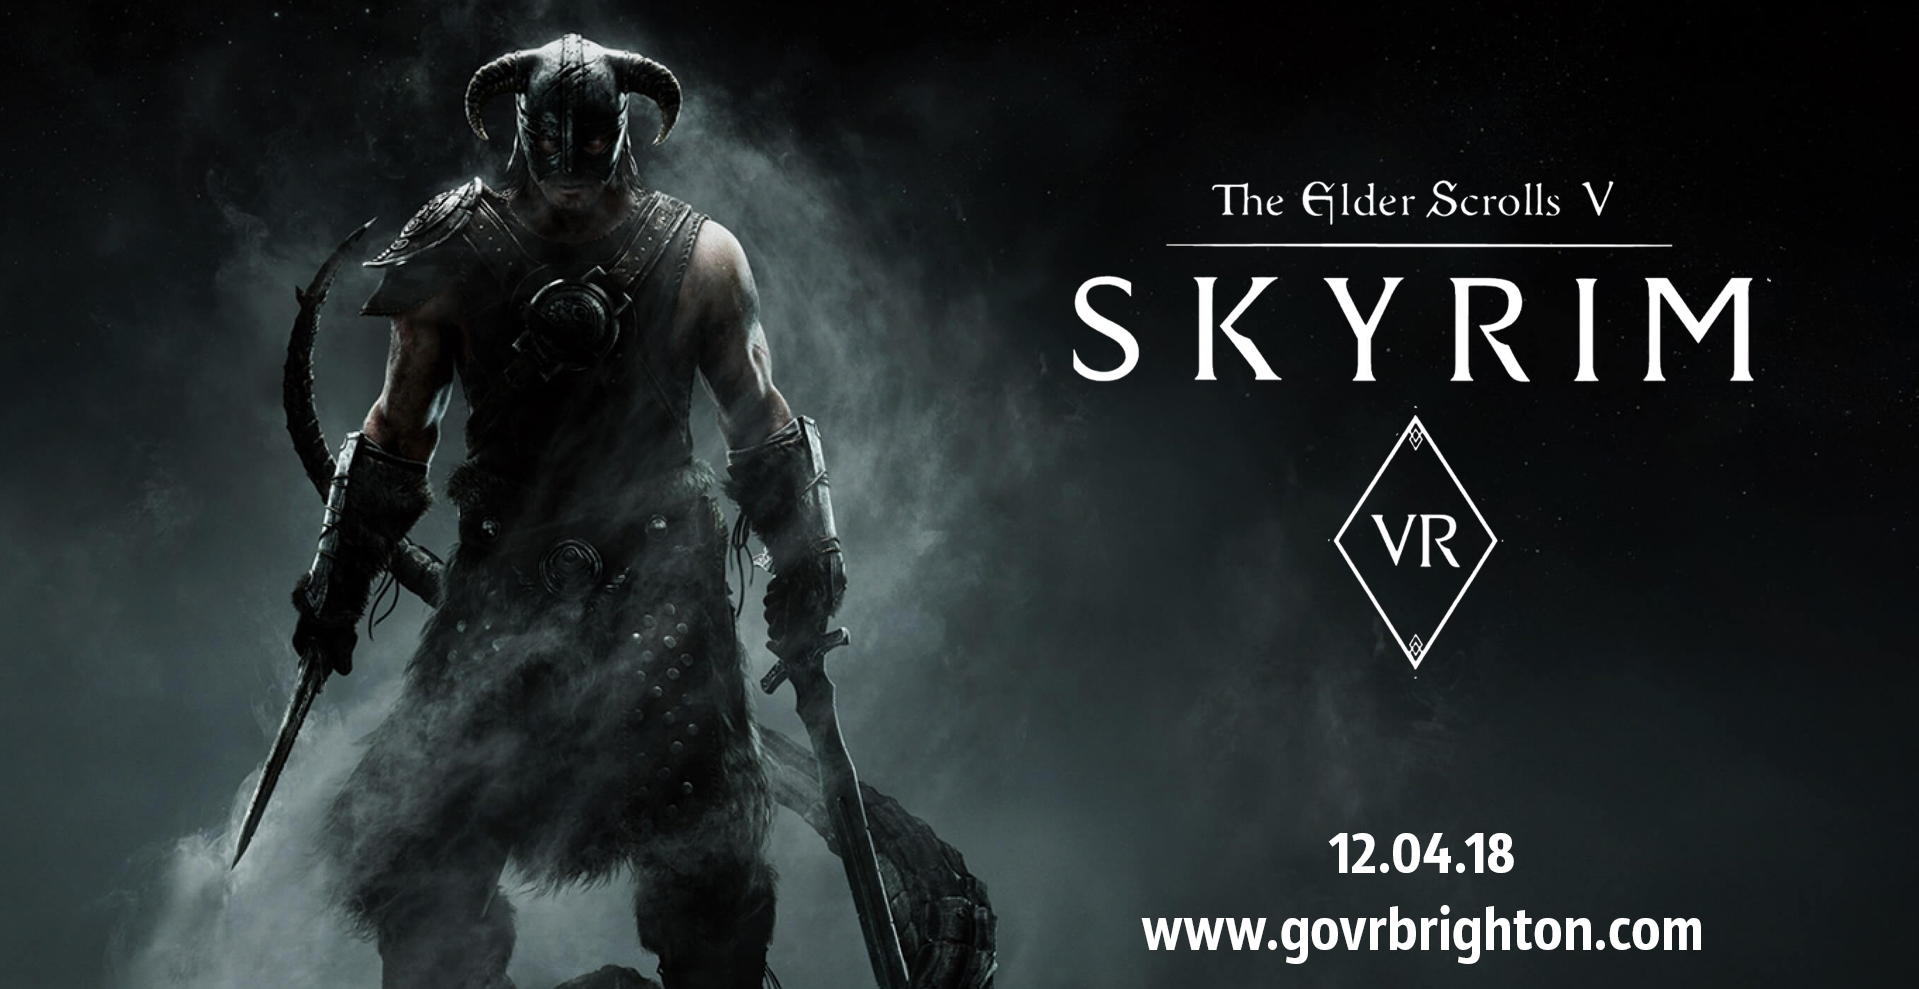 Skyrim VR Party